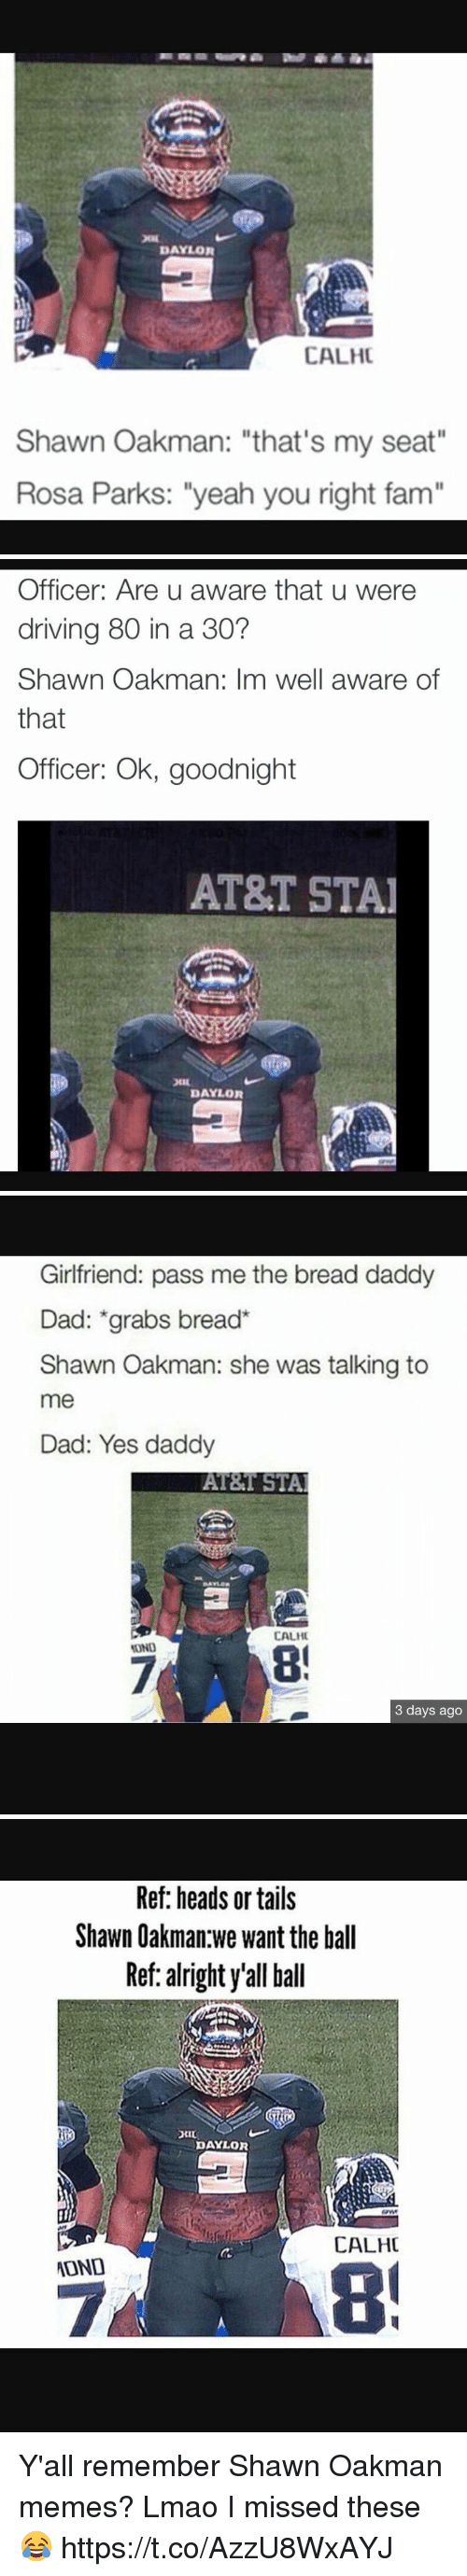 "Dad, Driving, and Fam: DAYLOR  CALHC  Shawn Oakman: ""that's my seat""  Rosa Parks: ""yeah you right fam""   Officer: Are u aware that u were  driving 80 in a 30?  Shawn Oakman: Im well aware of  that  Officer: Ok, goodnight  AT&T STAI  DAYLOR   Girlfriend: pass me the bread daddy  Dad: grabs bread  Shawn Oakman: she was talking to  me  Dad: Yes daddy  AT&T STAl  CALHU  3 days ago   Ref: heads or tails  Shawn Oakman we want the ball  Ref: alright y'all ball  DAYLOR  CALHC  ATOND Y'all remember Shawn Oakman memes? Lmao I missed these😂 https://t.co/AzzU8WxAYJ"